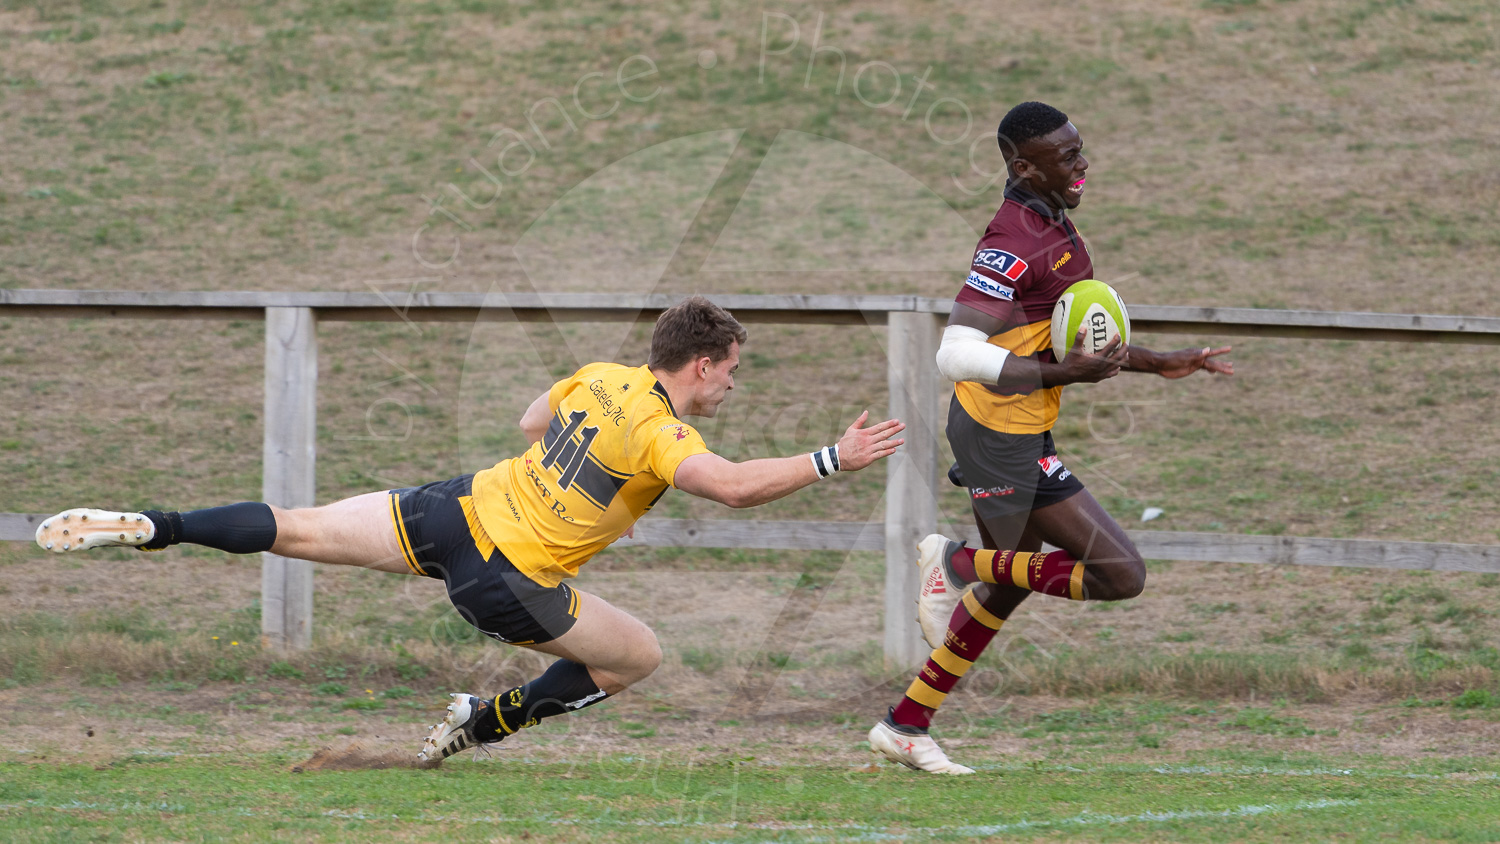 Spencer Sutherland outpacing the opposition comfortably (Photo: Iain Frankish, Actuance Photography)